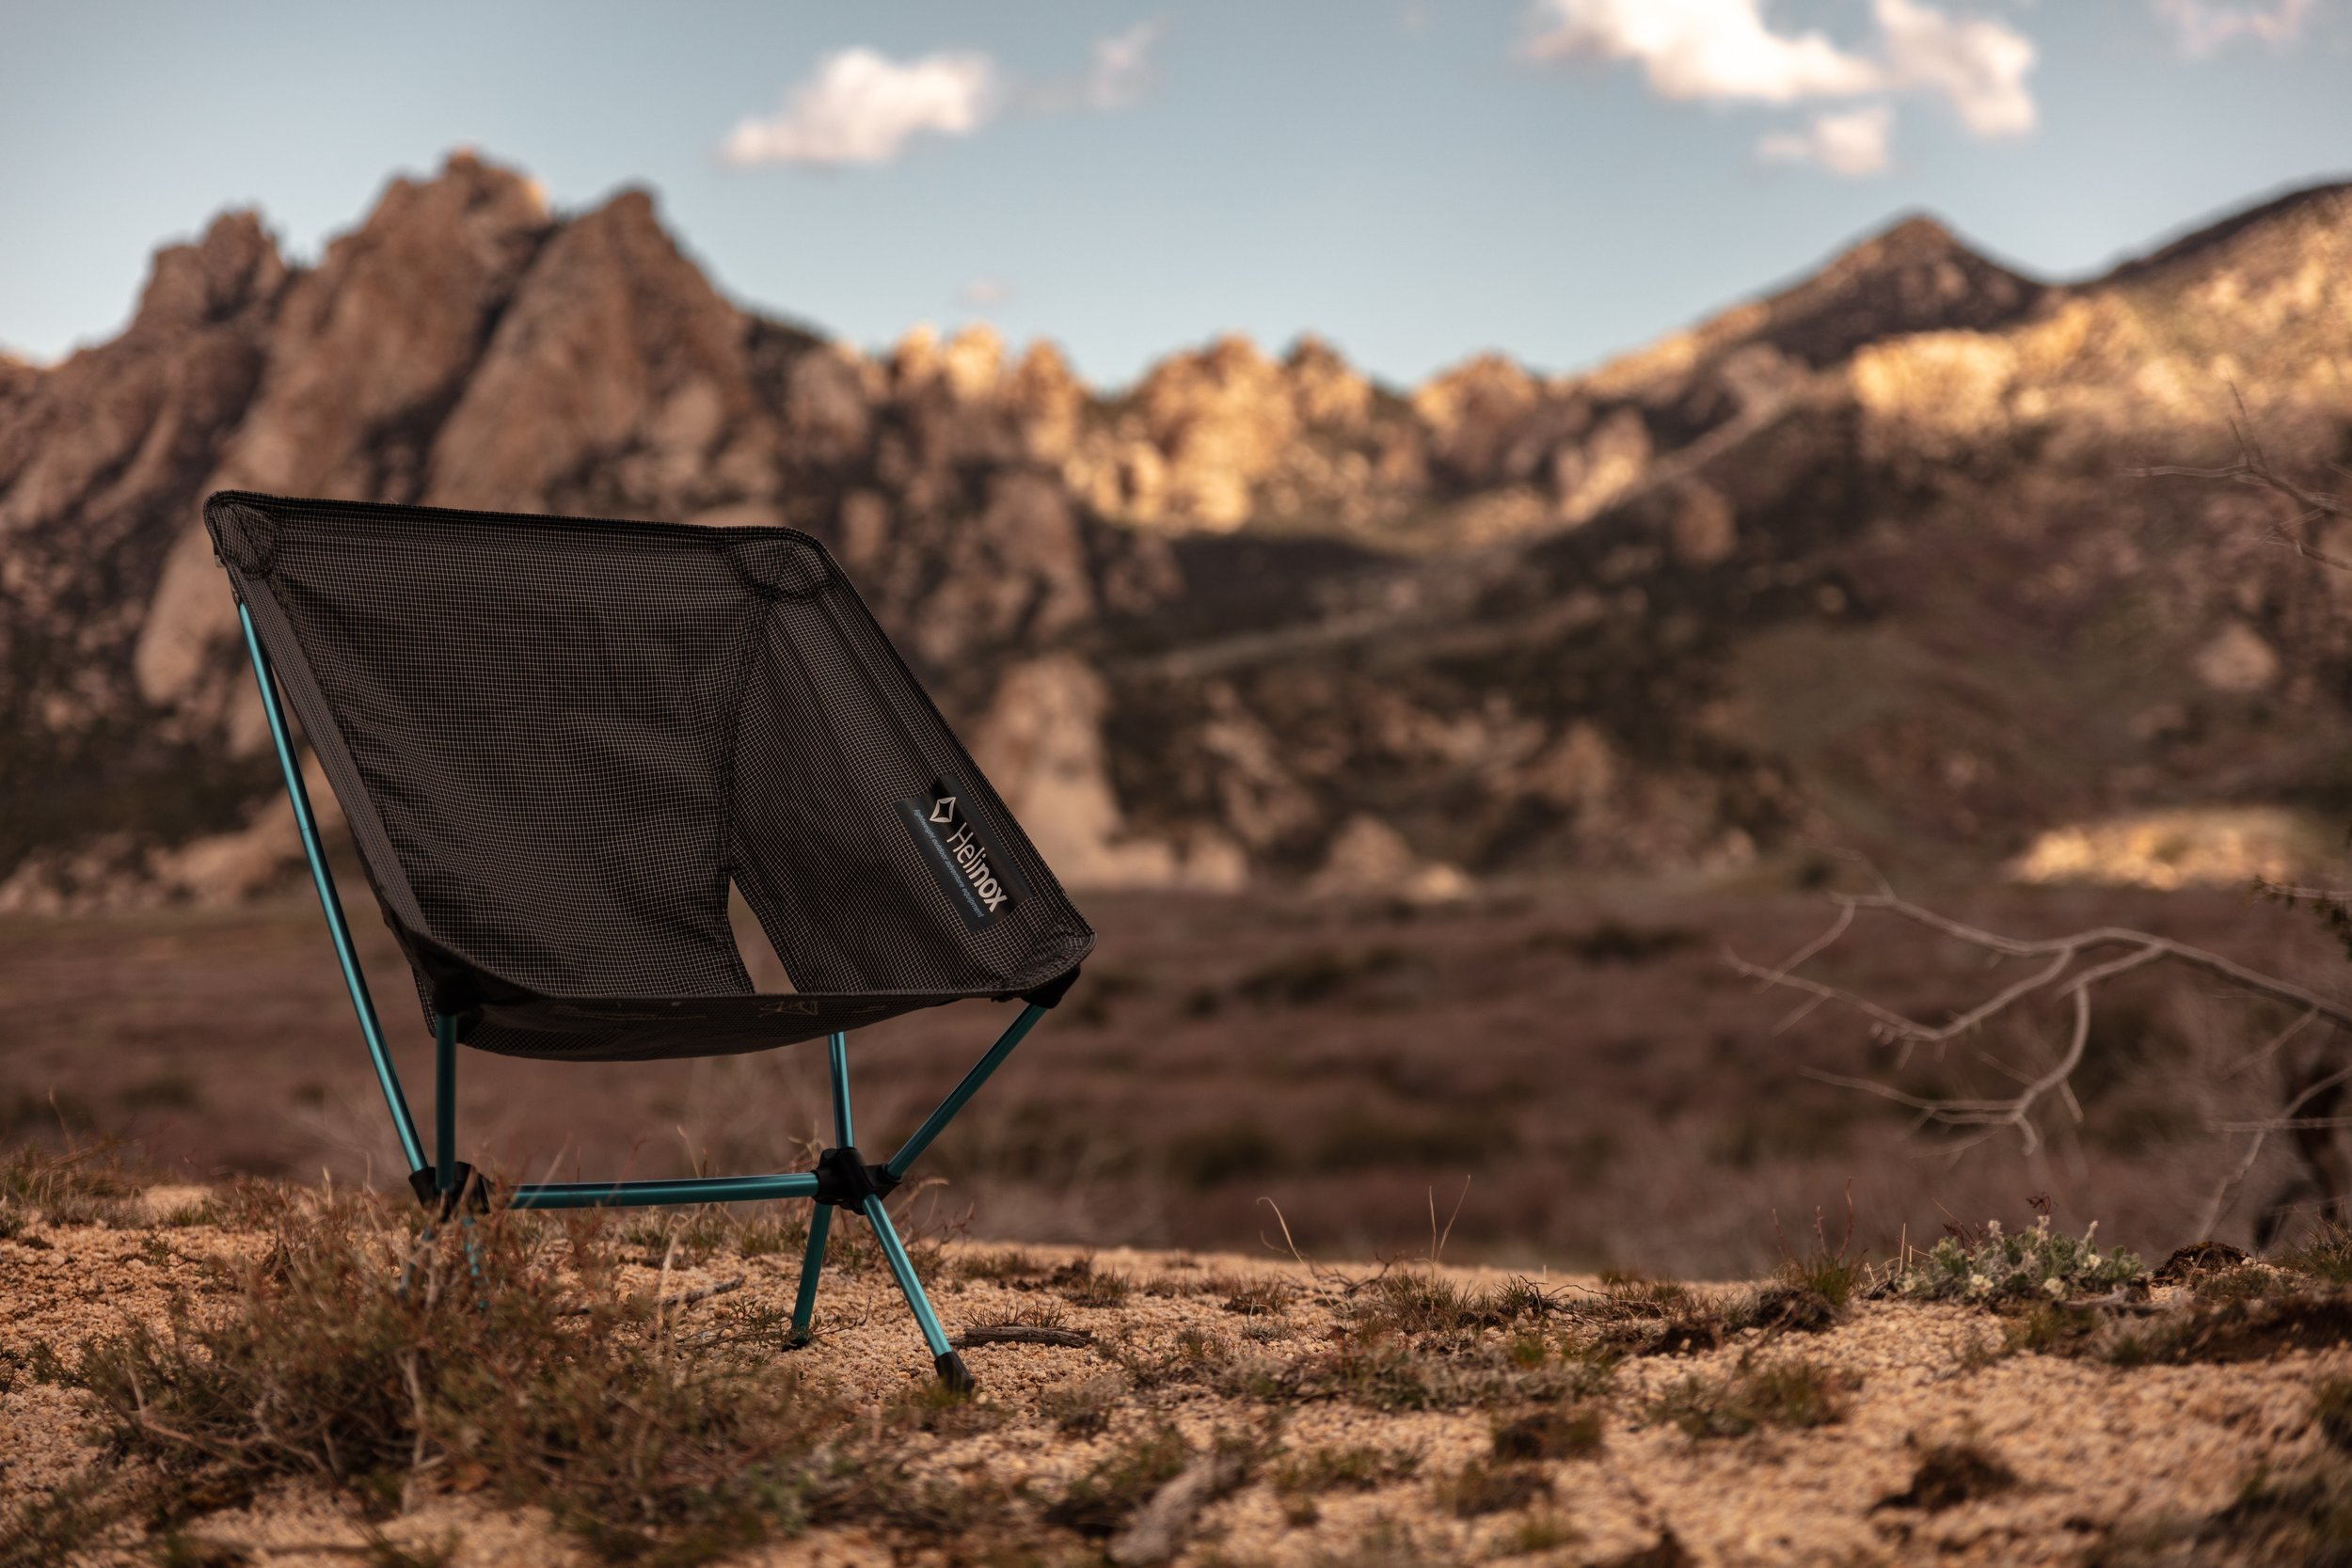 The   Helinox Chair One   is the big brother to the Zero that we recommend. It weighs a bit more, but is more affordable. Ultimately, the Zero is the lightest chair, so it's the one we picked for our lightweight pick. But we also think the One is a great backpacking chair. Photo by Patrick Hendry on Unsplash.